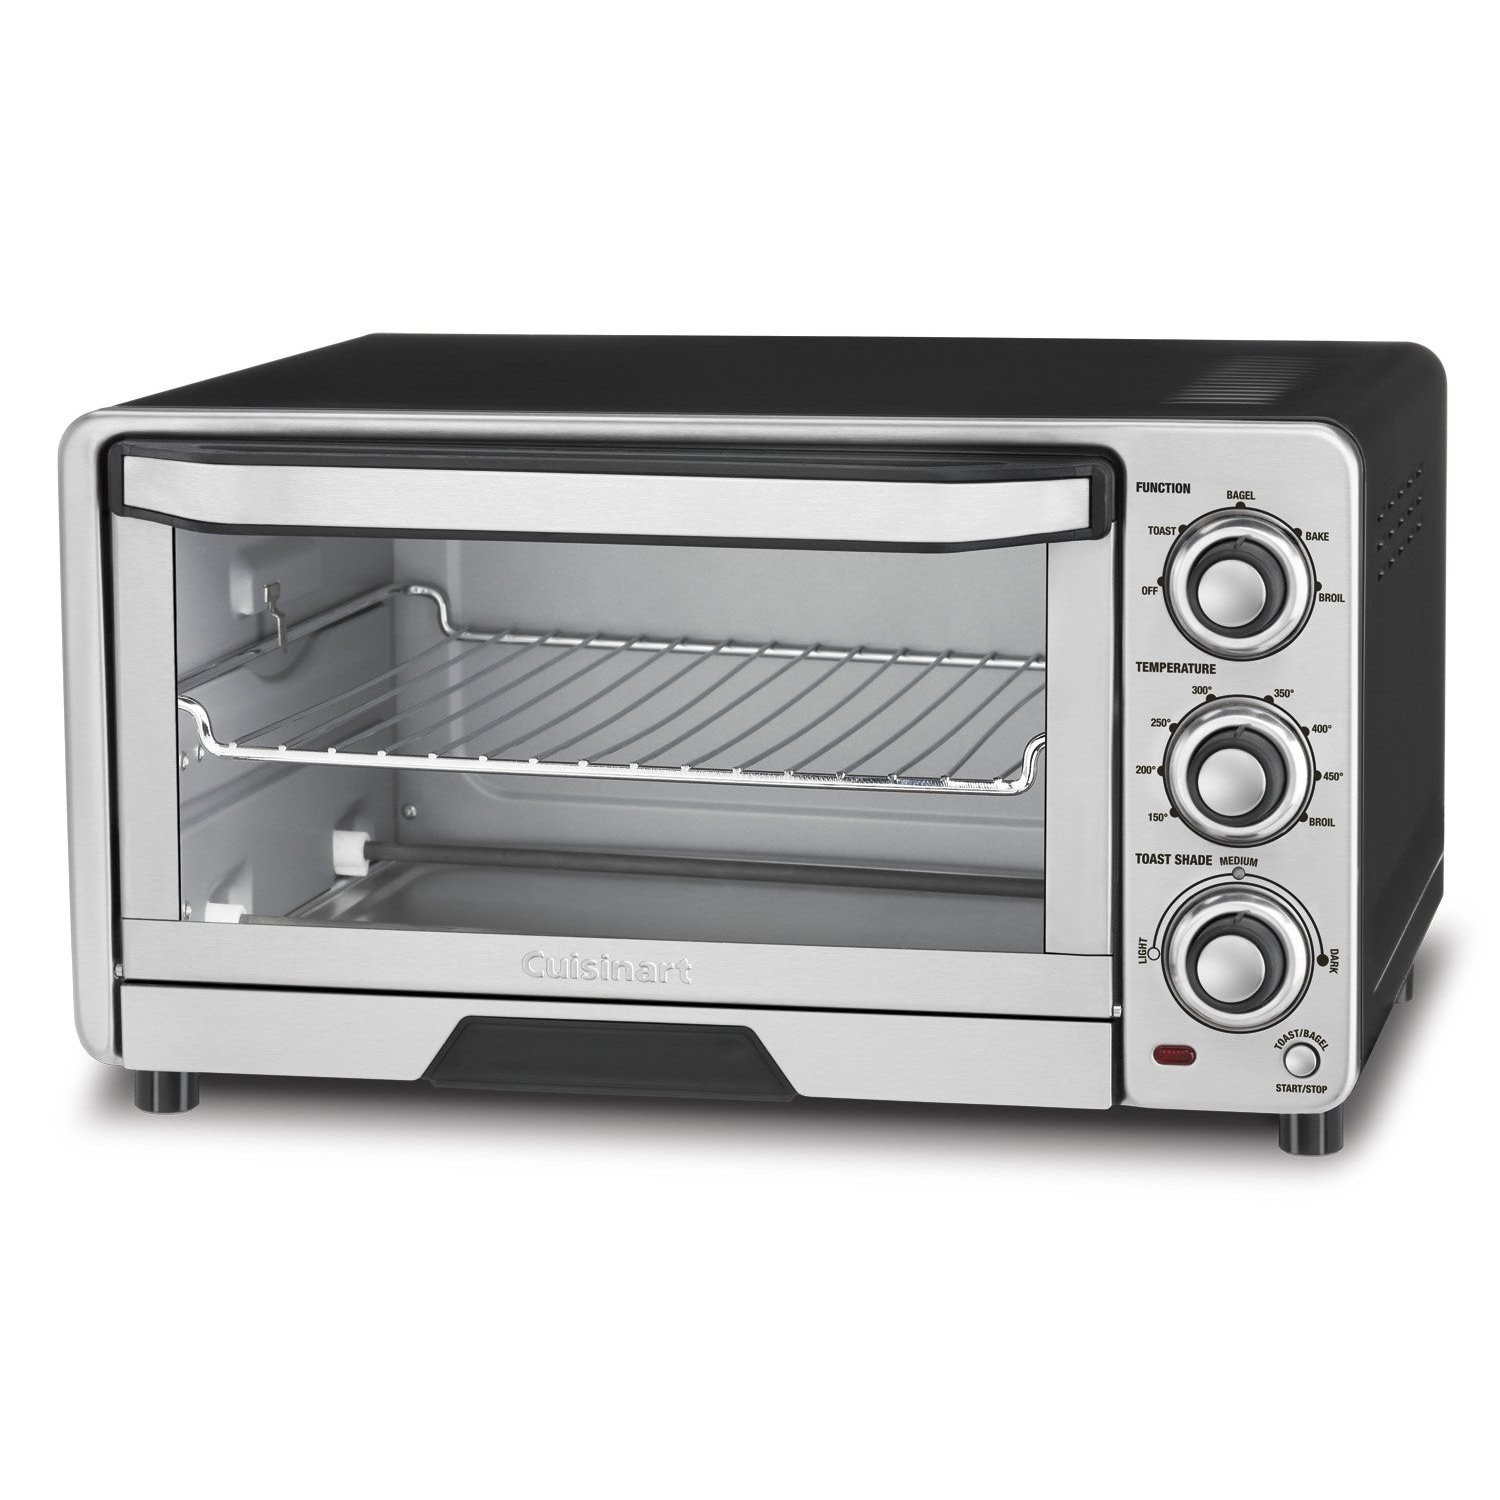 oven retro ero toaster geek review ovens americana for sale